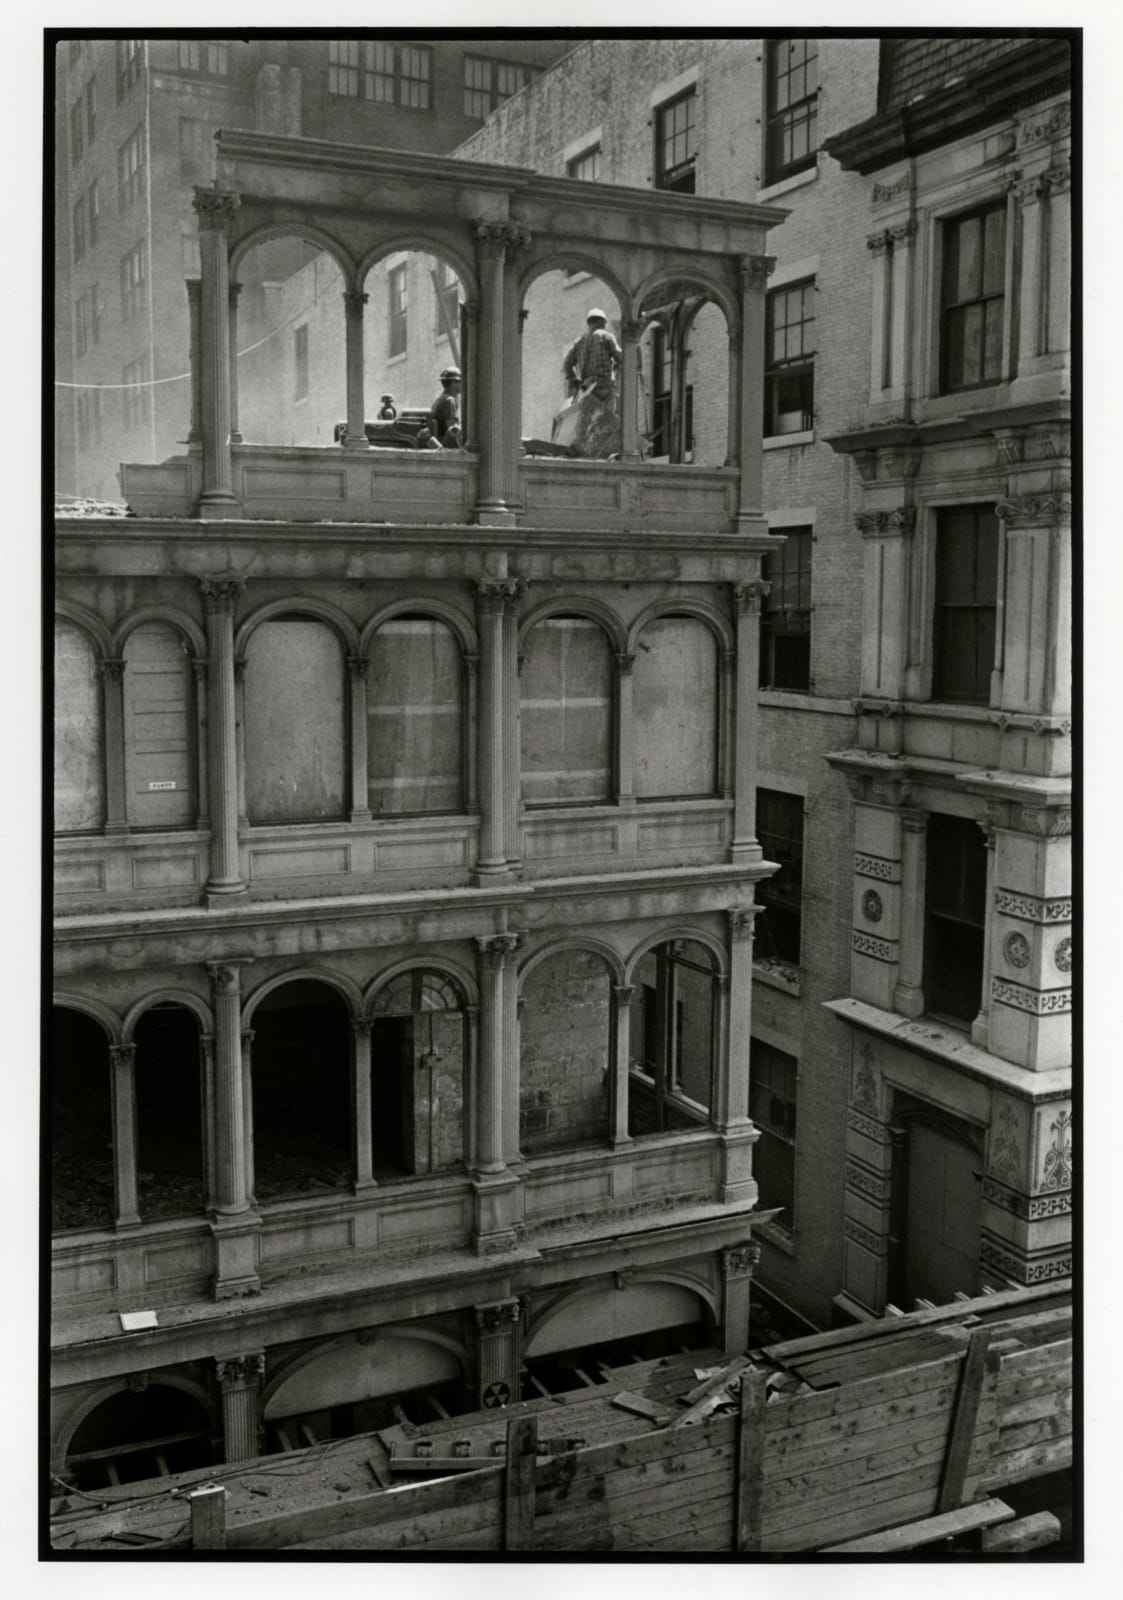 Danny Lyon - 82 Beekman Street, Cast Iron Building, Lower Manhattan, 1967